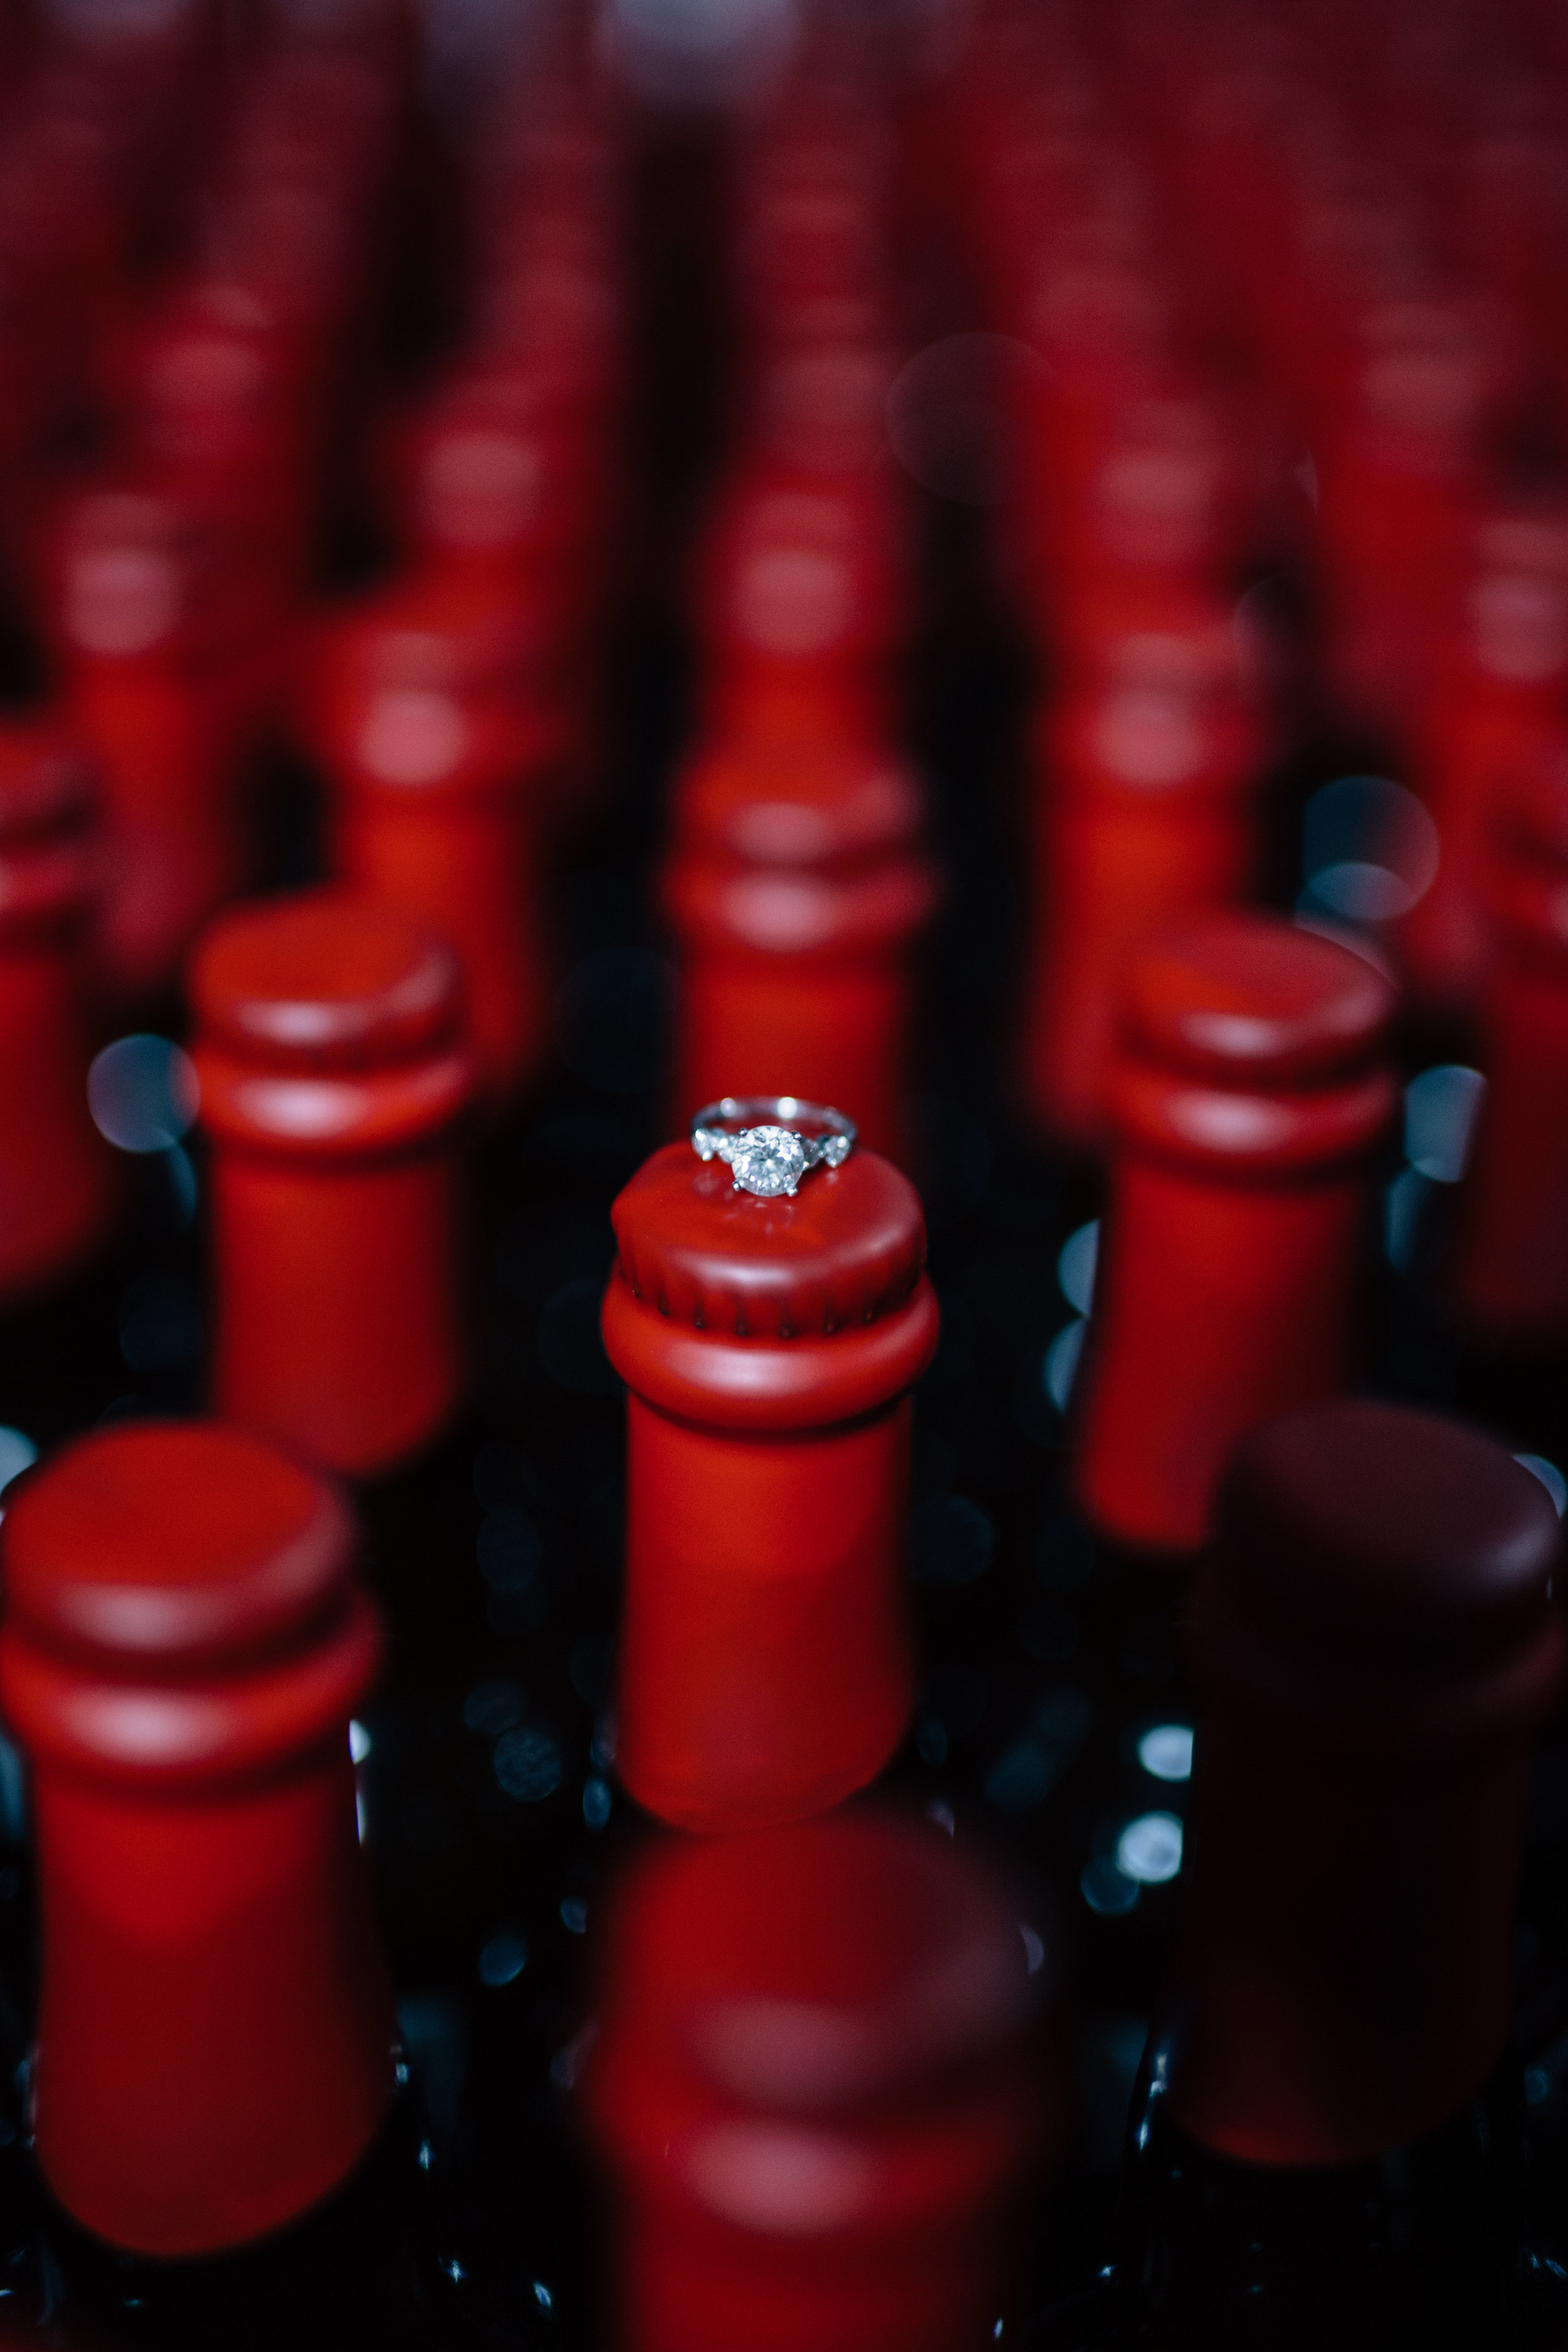 Another ring shot - On top of the Rare Barrel bottles